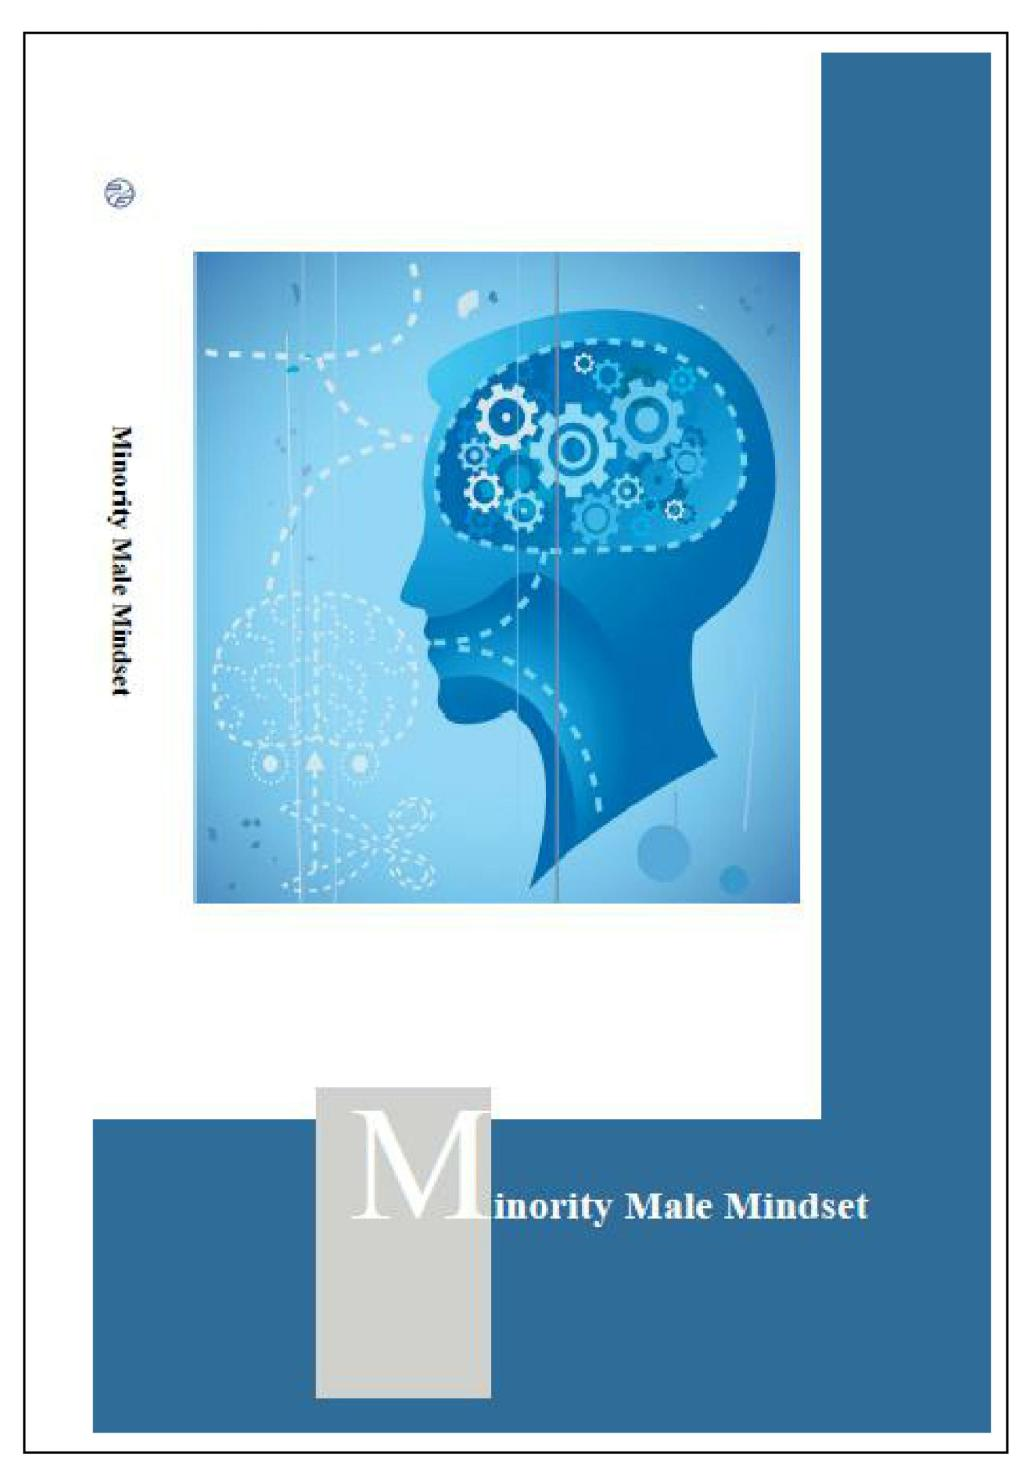 Minority Male Mindset Cover Half 2012